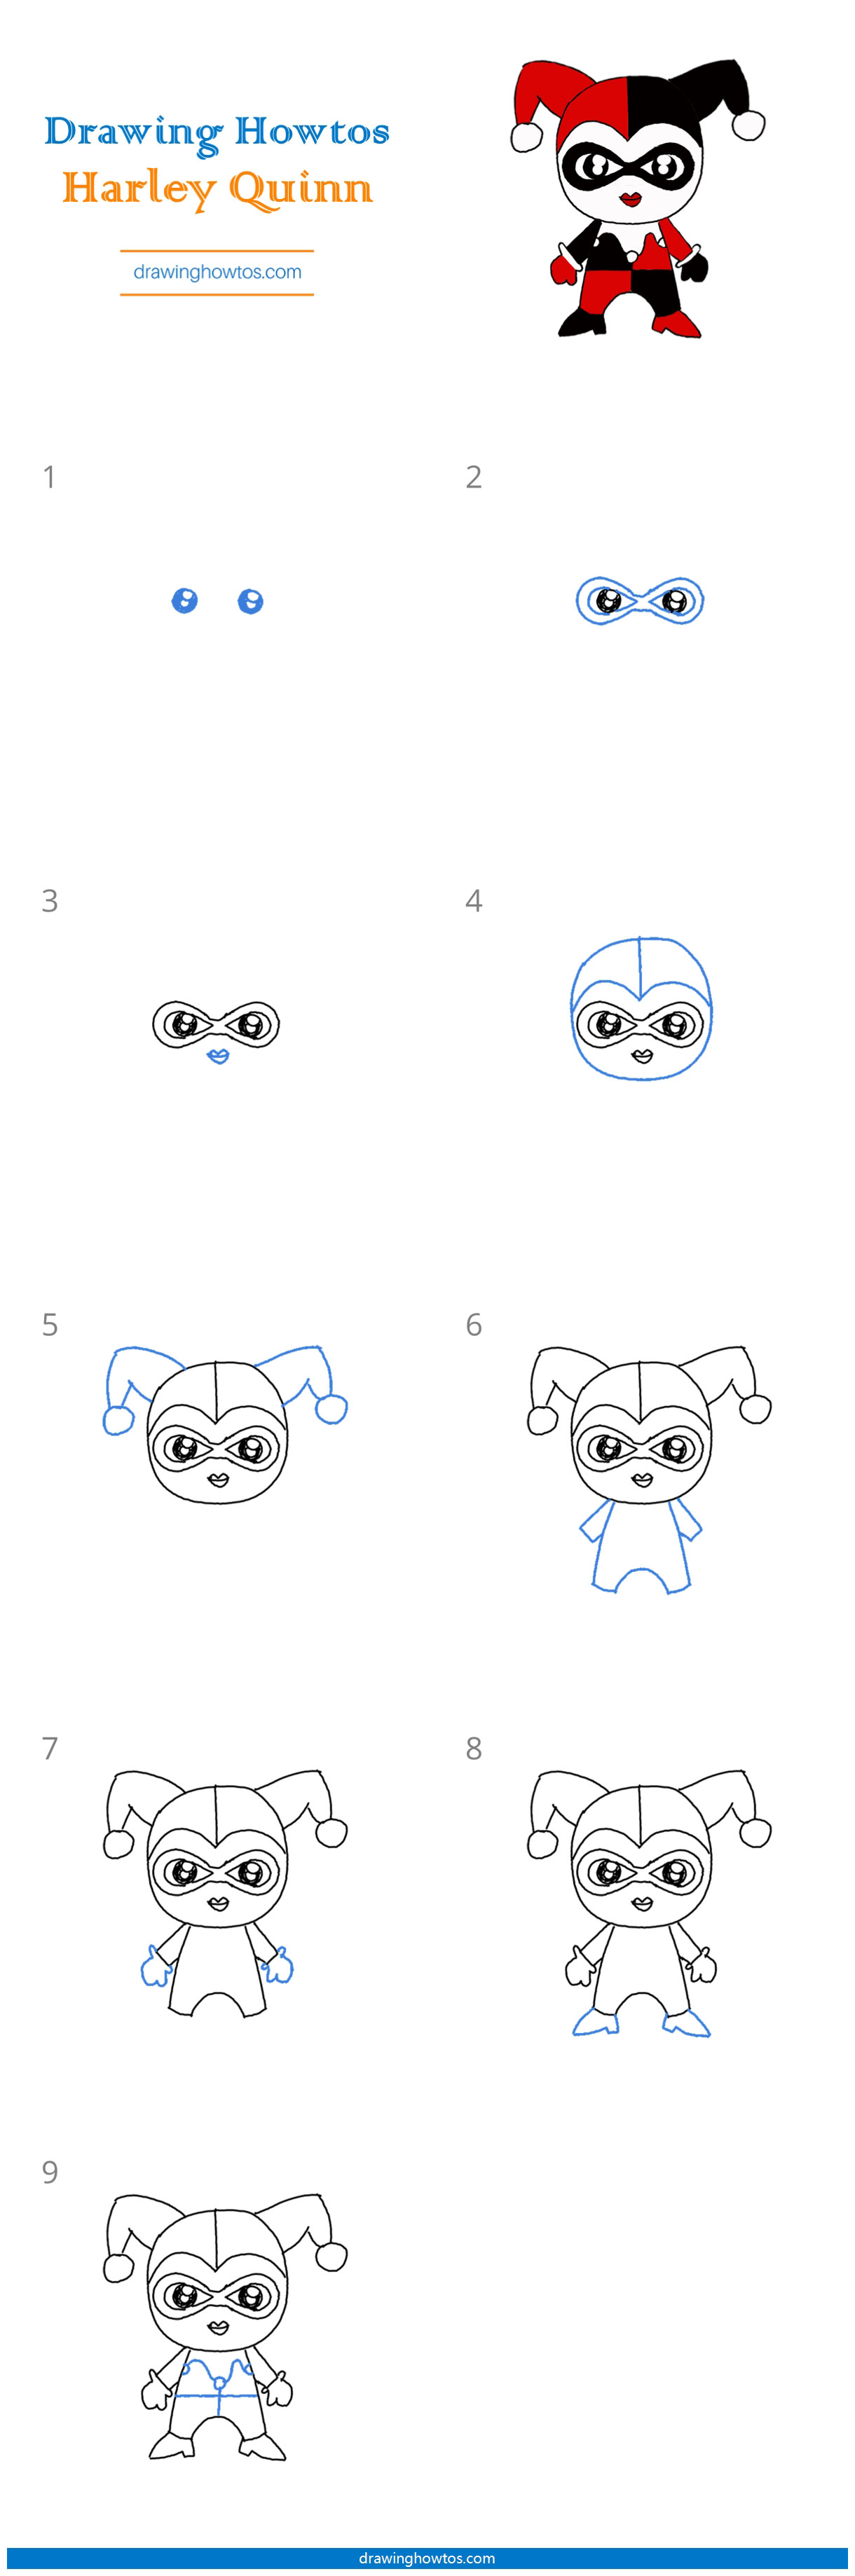 How To Draw Harley Quinn Step By Step Easy Drawing Guides Drawing Howtos